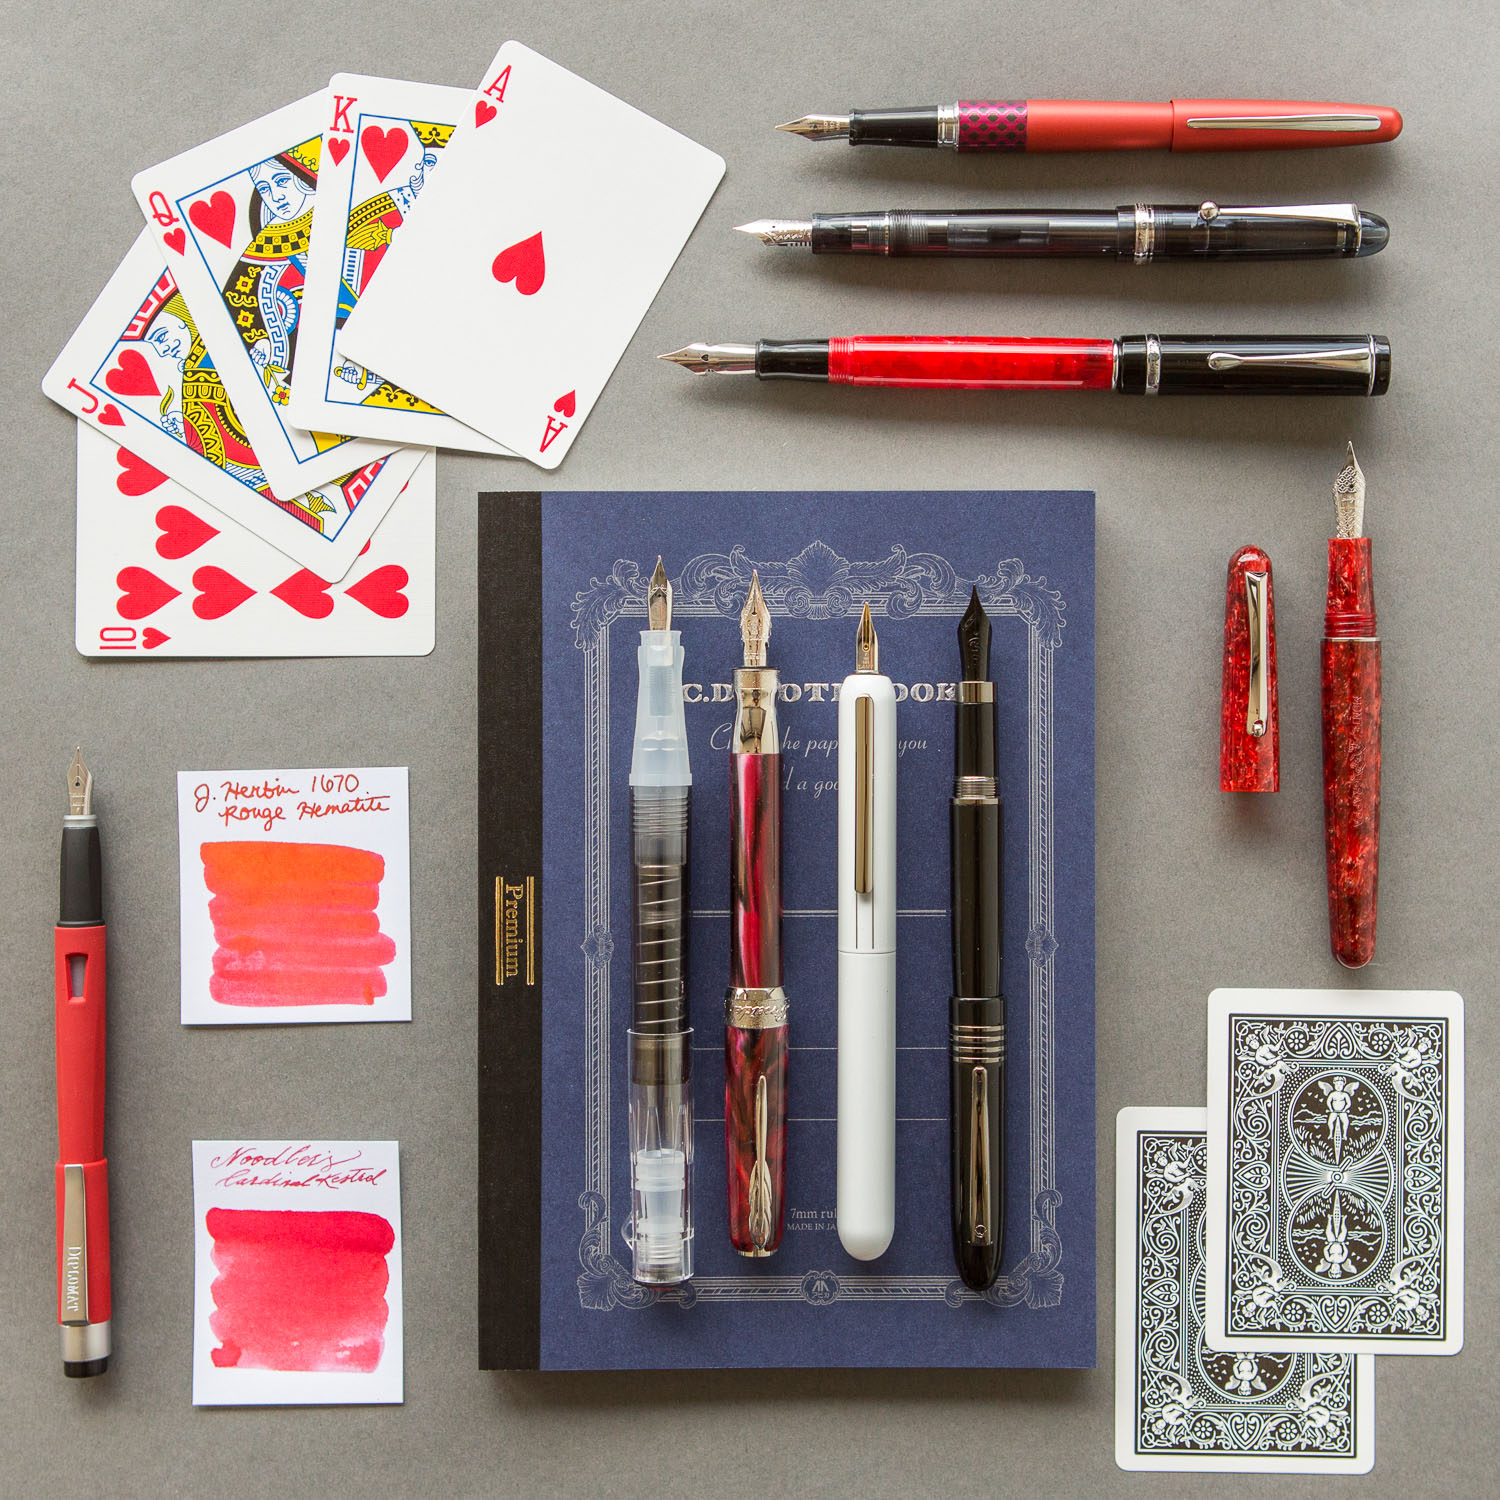 Playing card themed spread of fountain pens, notebooks, and ink.